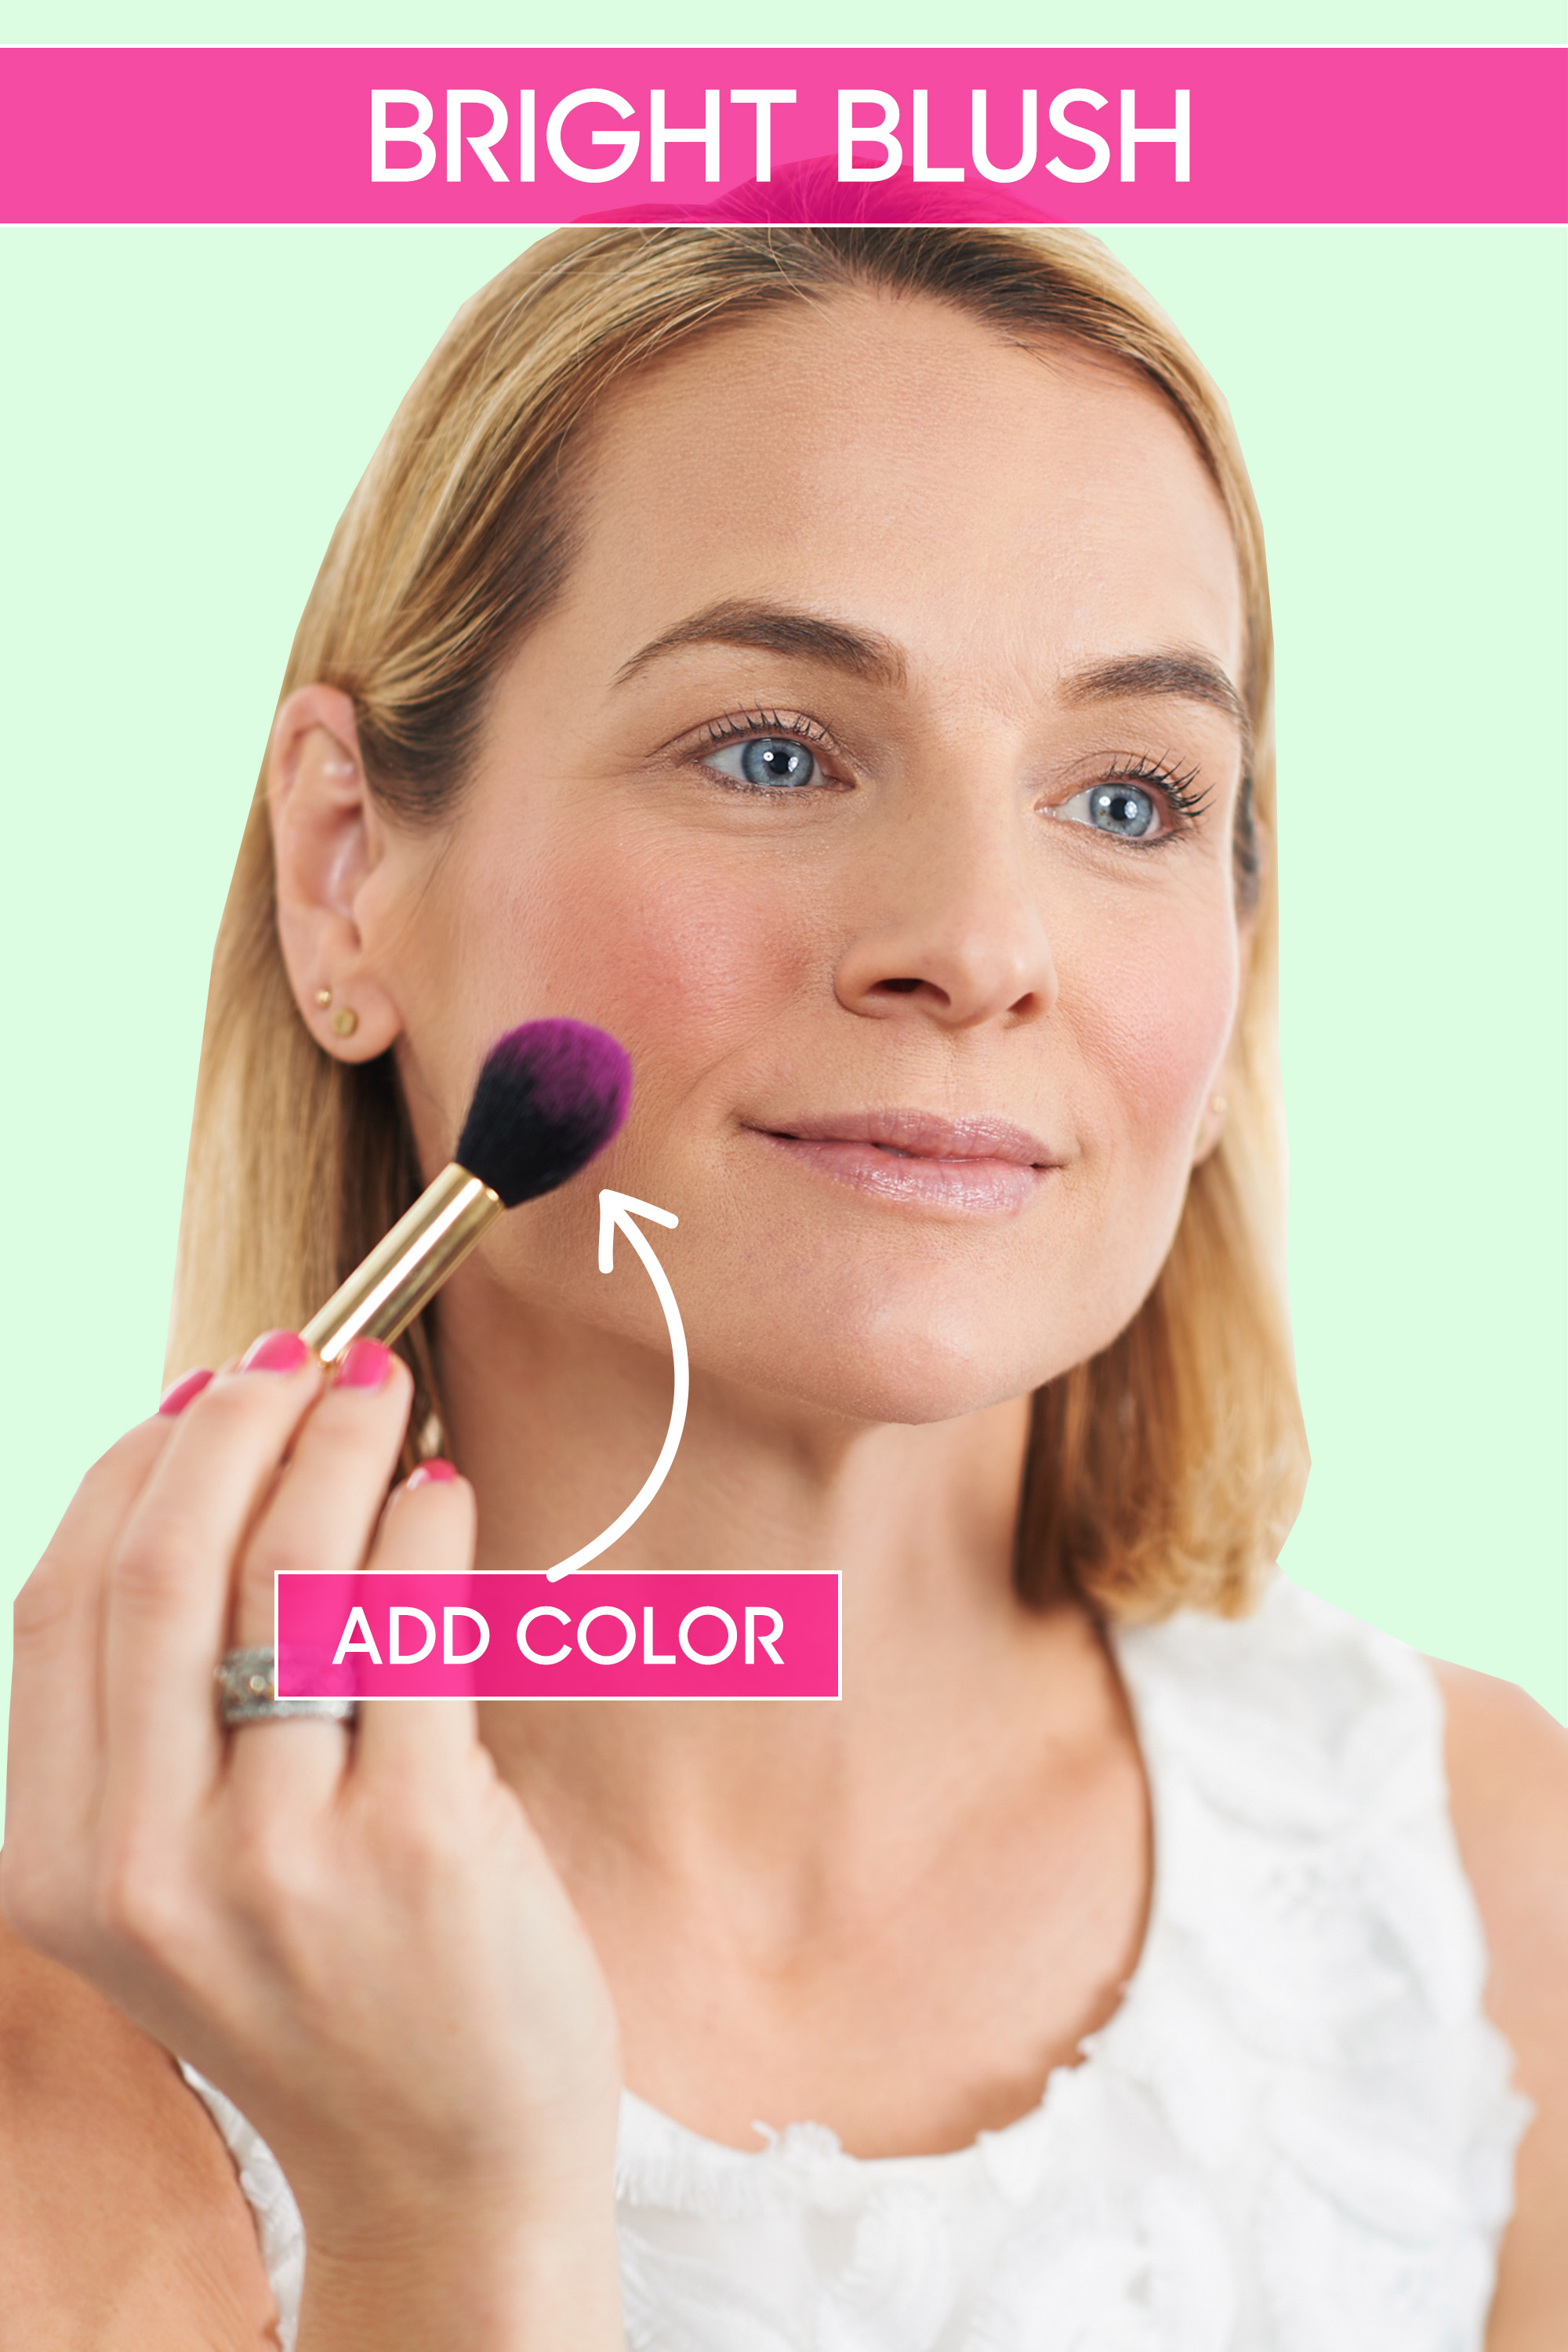 Makeup Trends Women Over 40 Shouldn't Be Afraid To Try